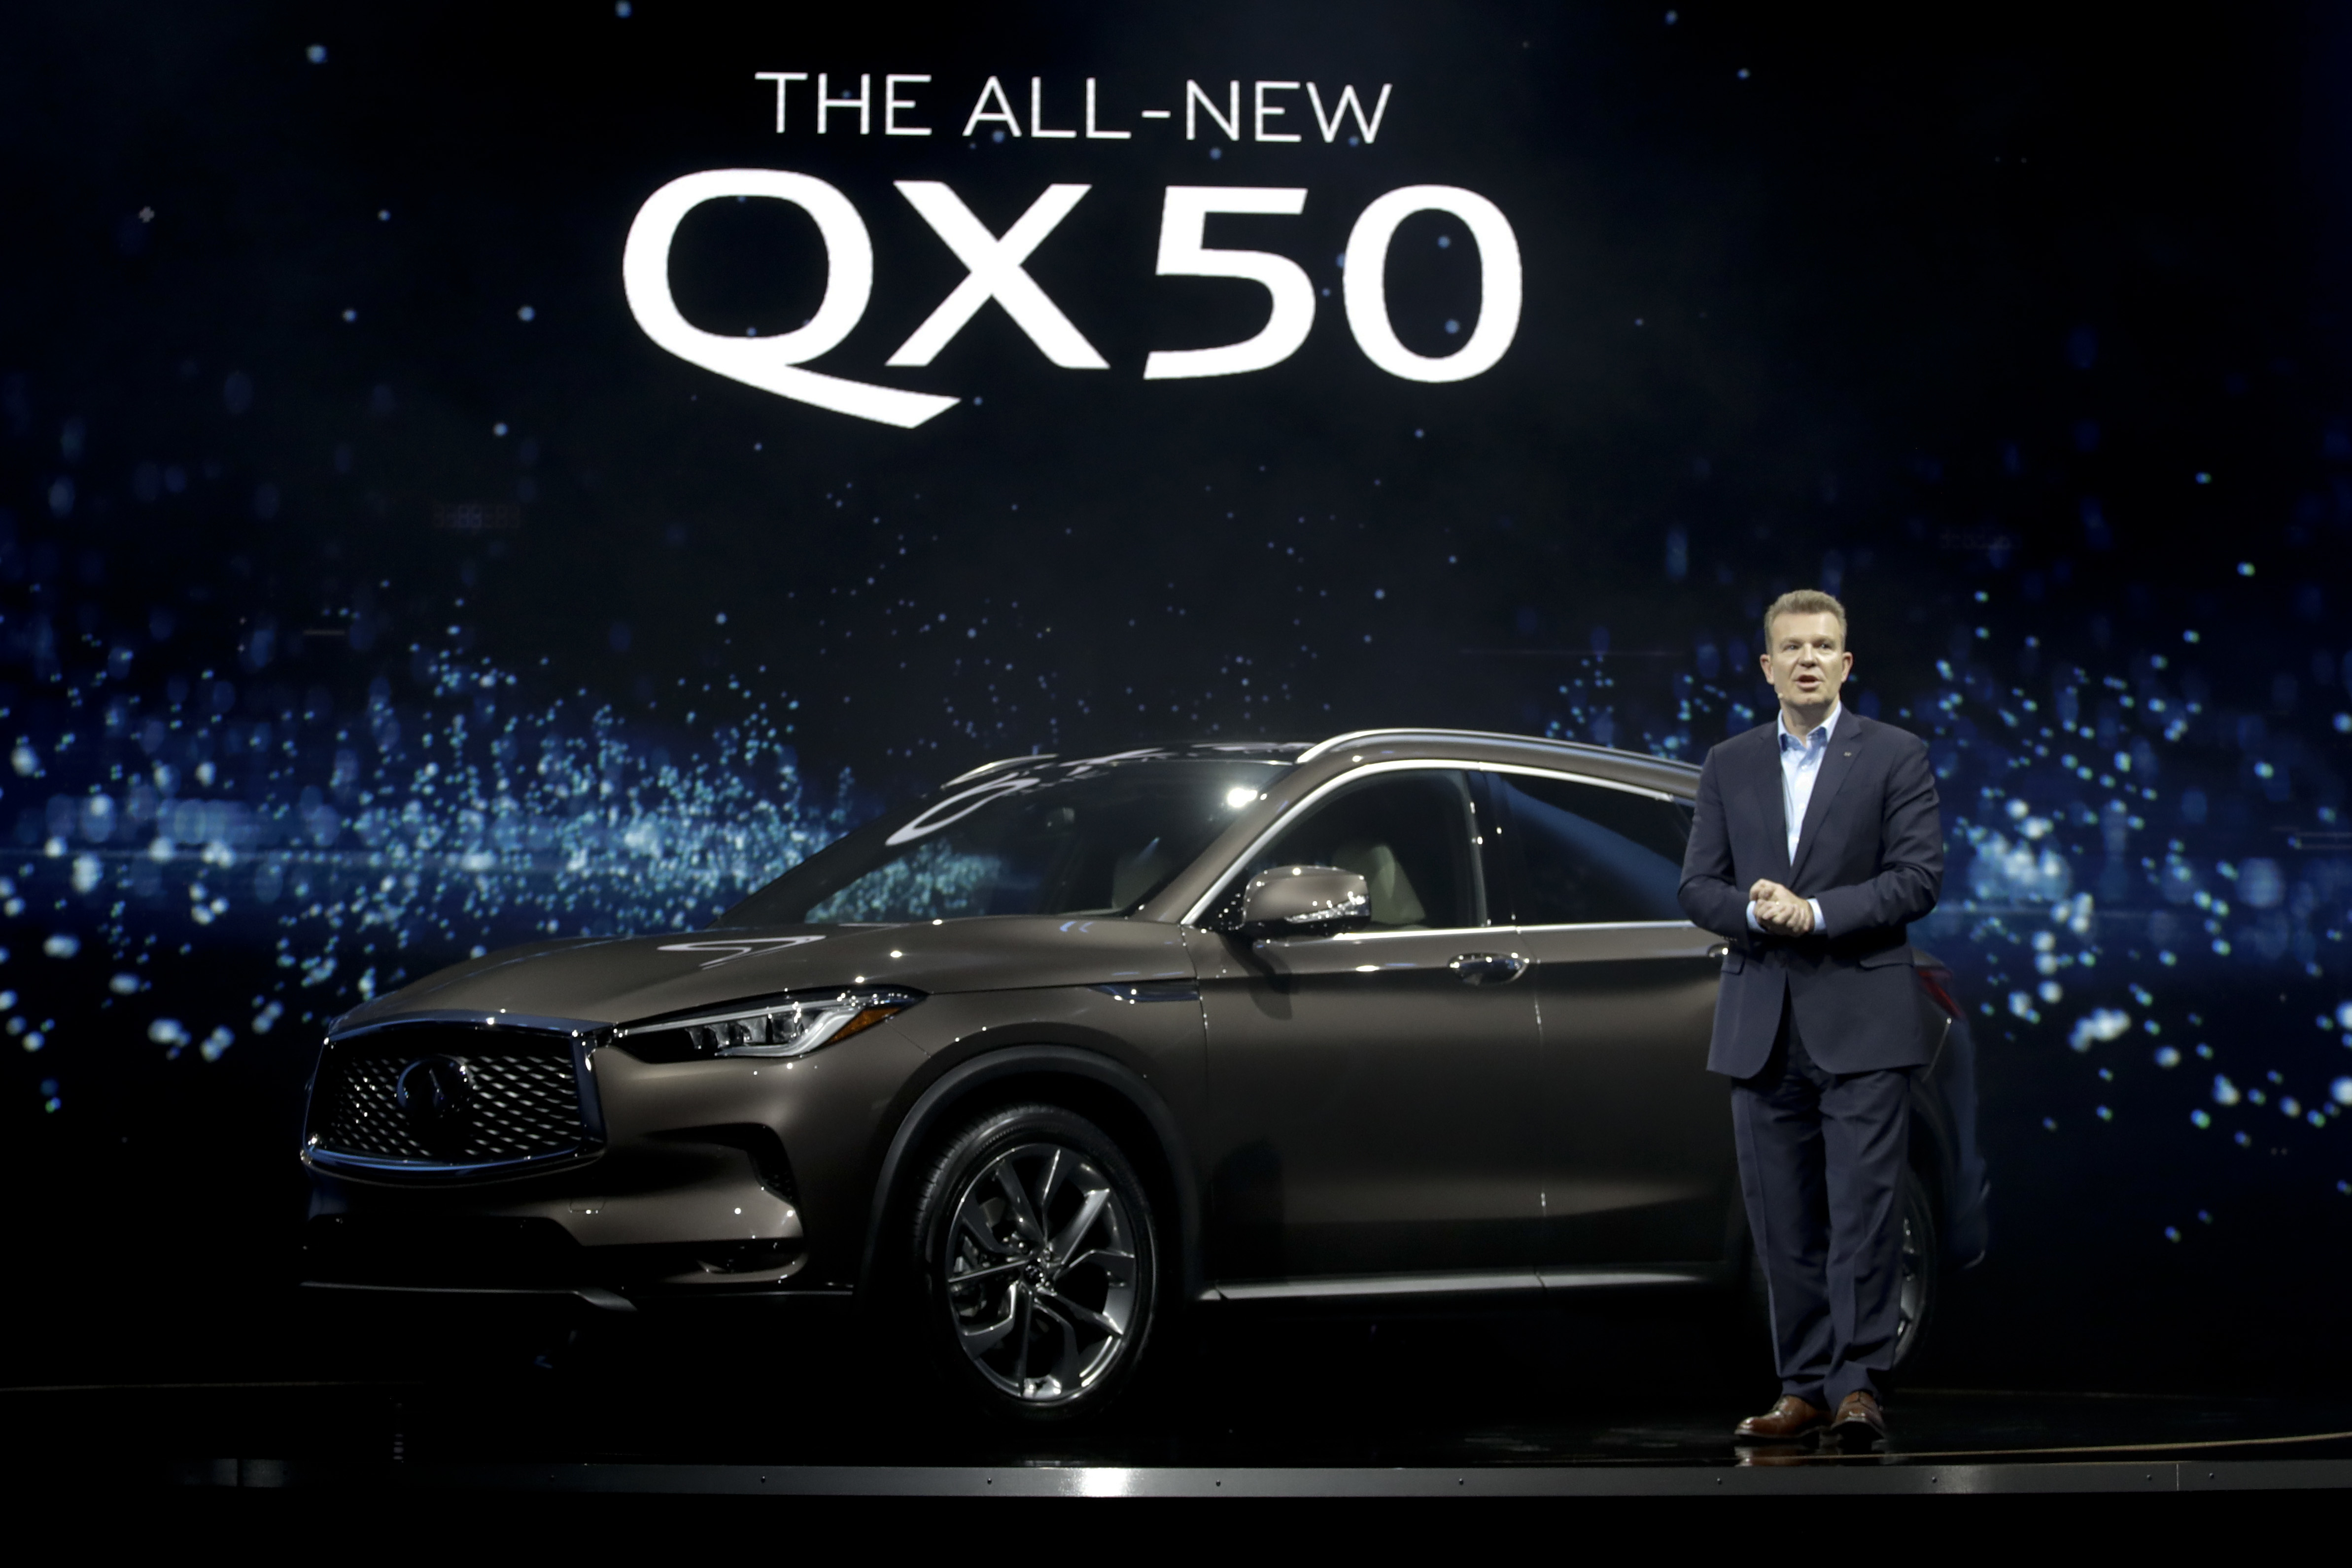 Christian Meunier, Global Division Vice President, Global Marketing and Sales Operations introduces the 2018 Infiniti QX50 as part of the AutoMobility LA auto show Tuesday, Nov. 28, 2017, in Hawthorne, Calif. (AP Photo/Chris Carlson)